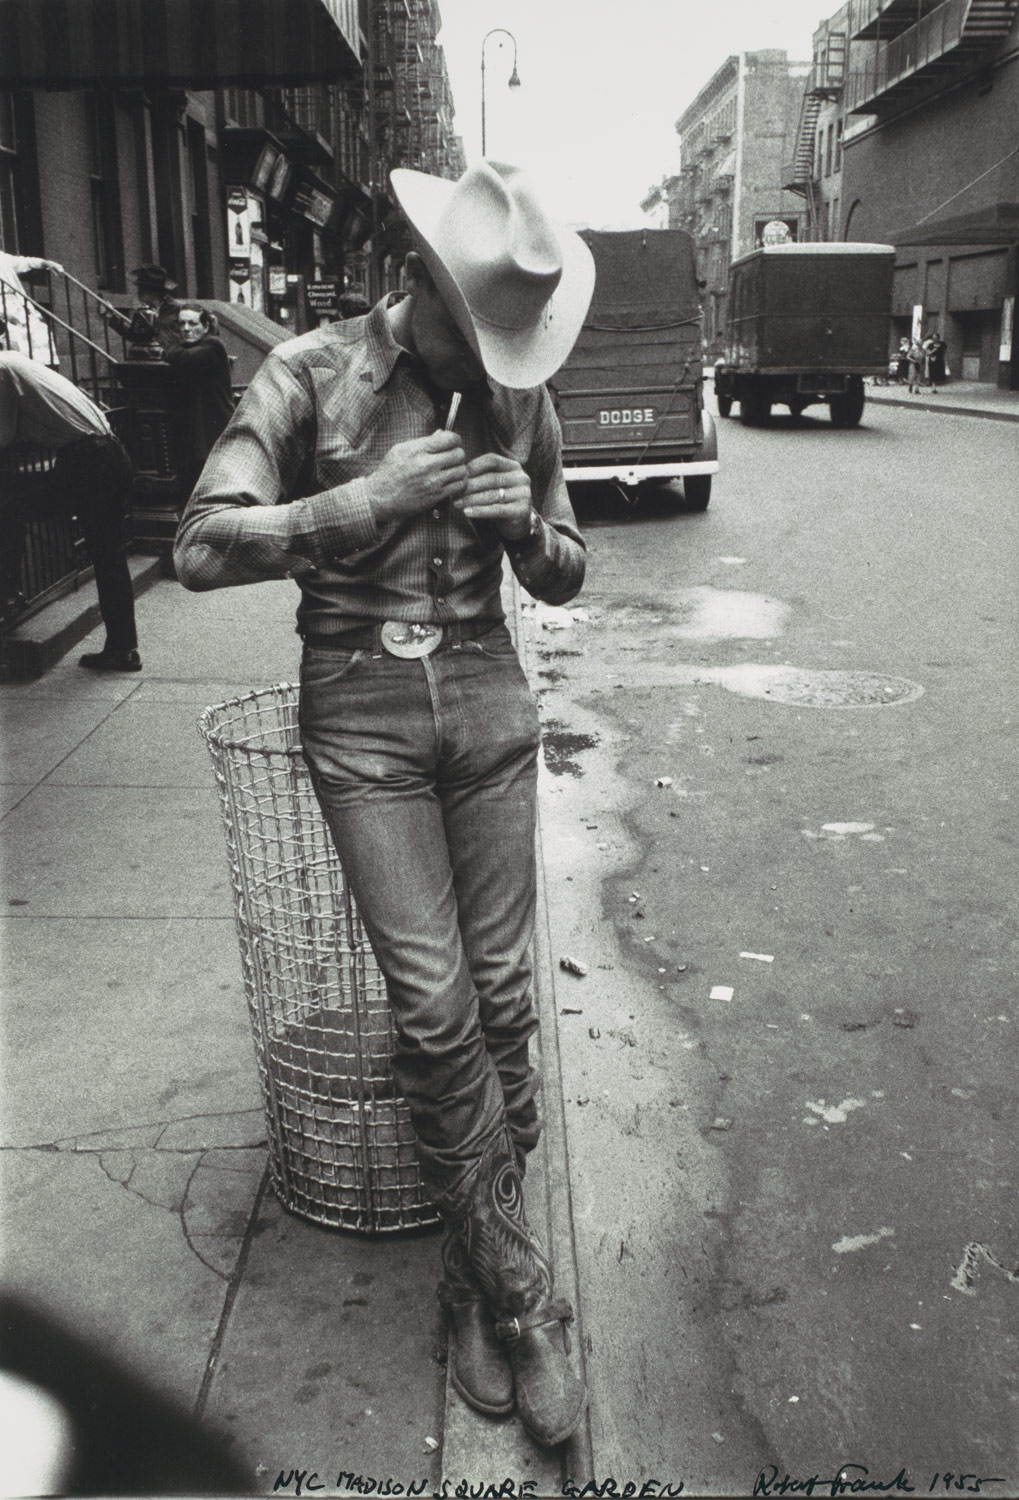 rodeo new york city robert frank work of art rodeo new york city